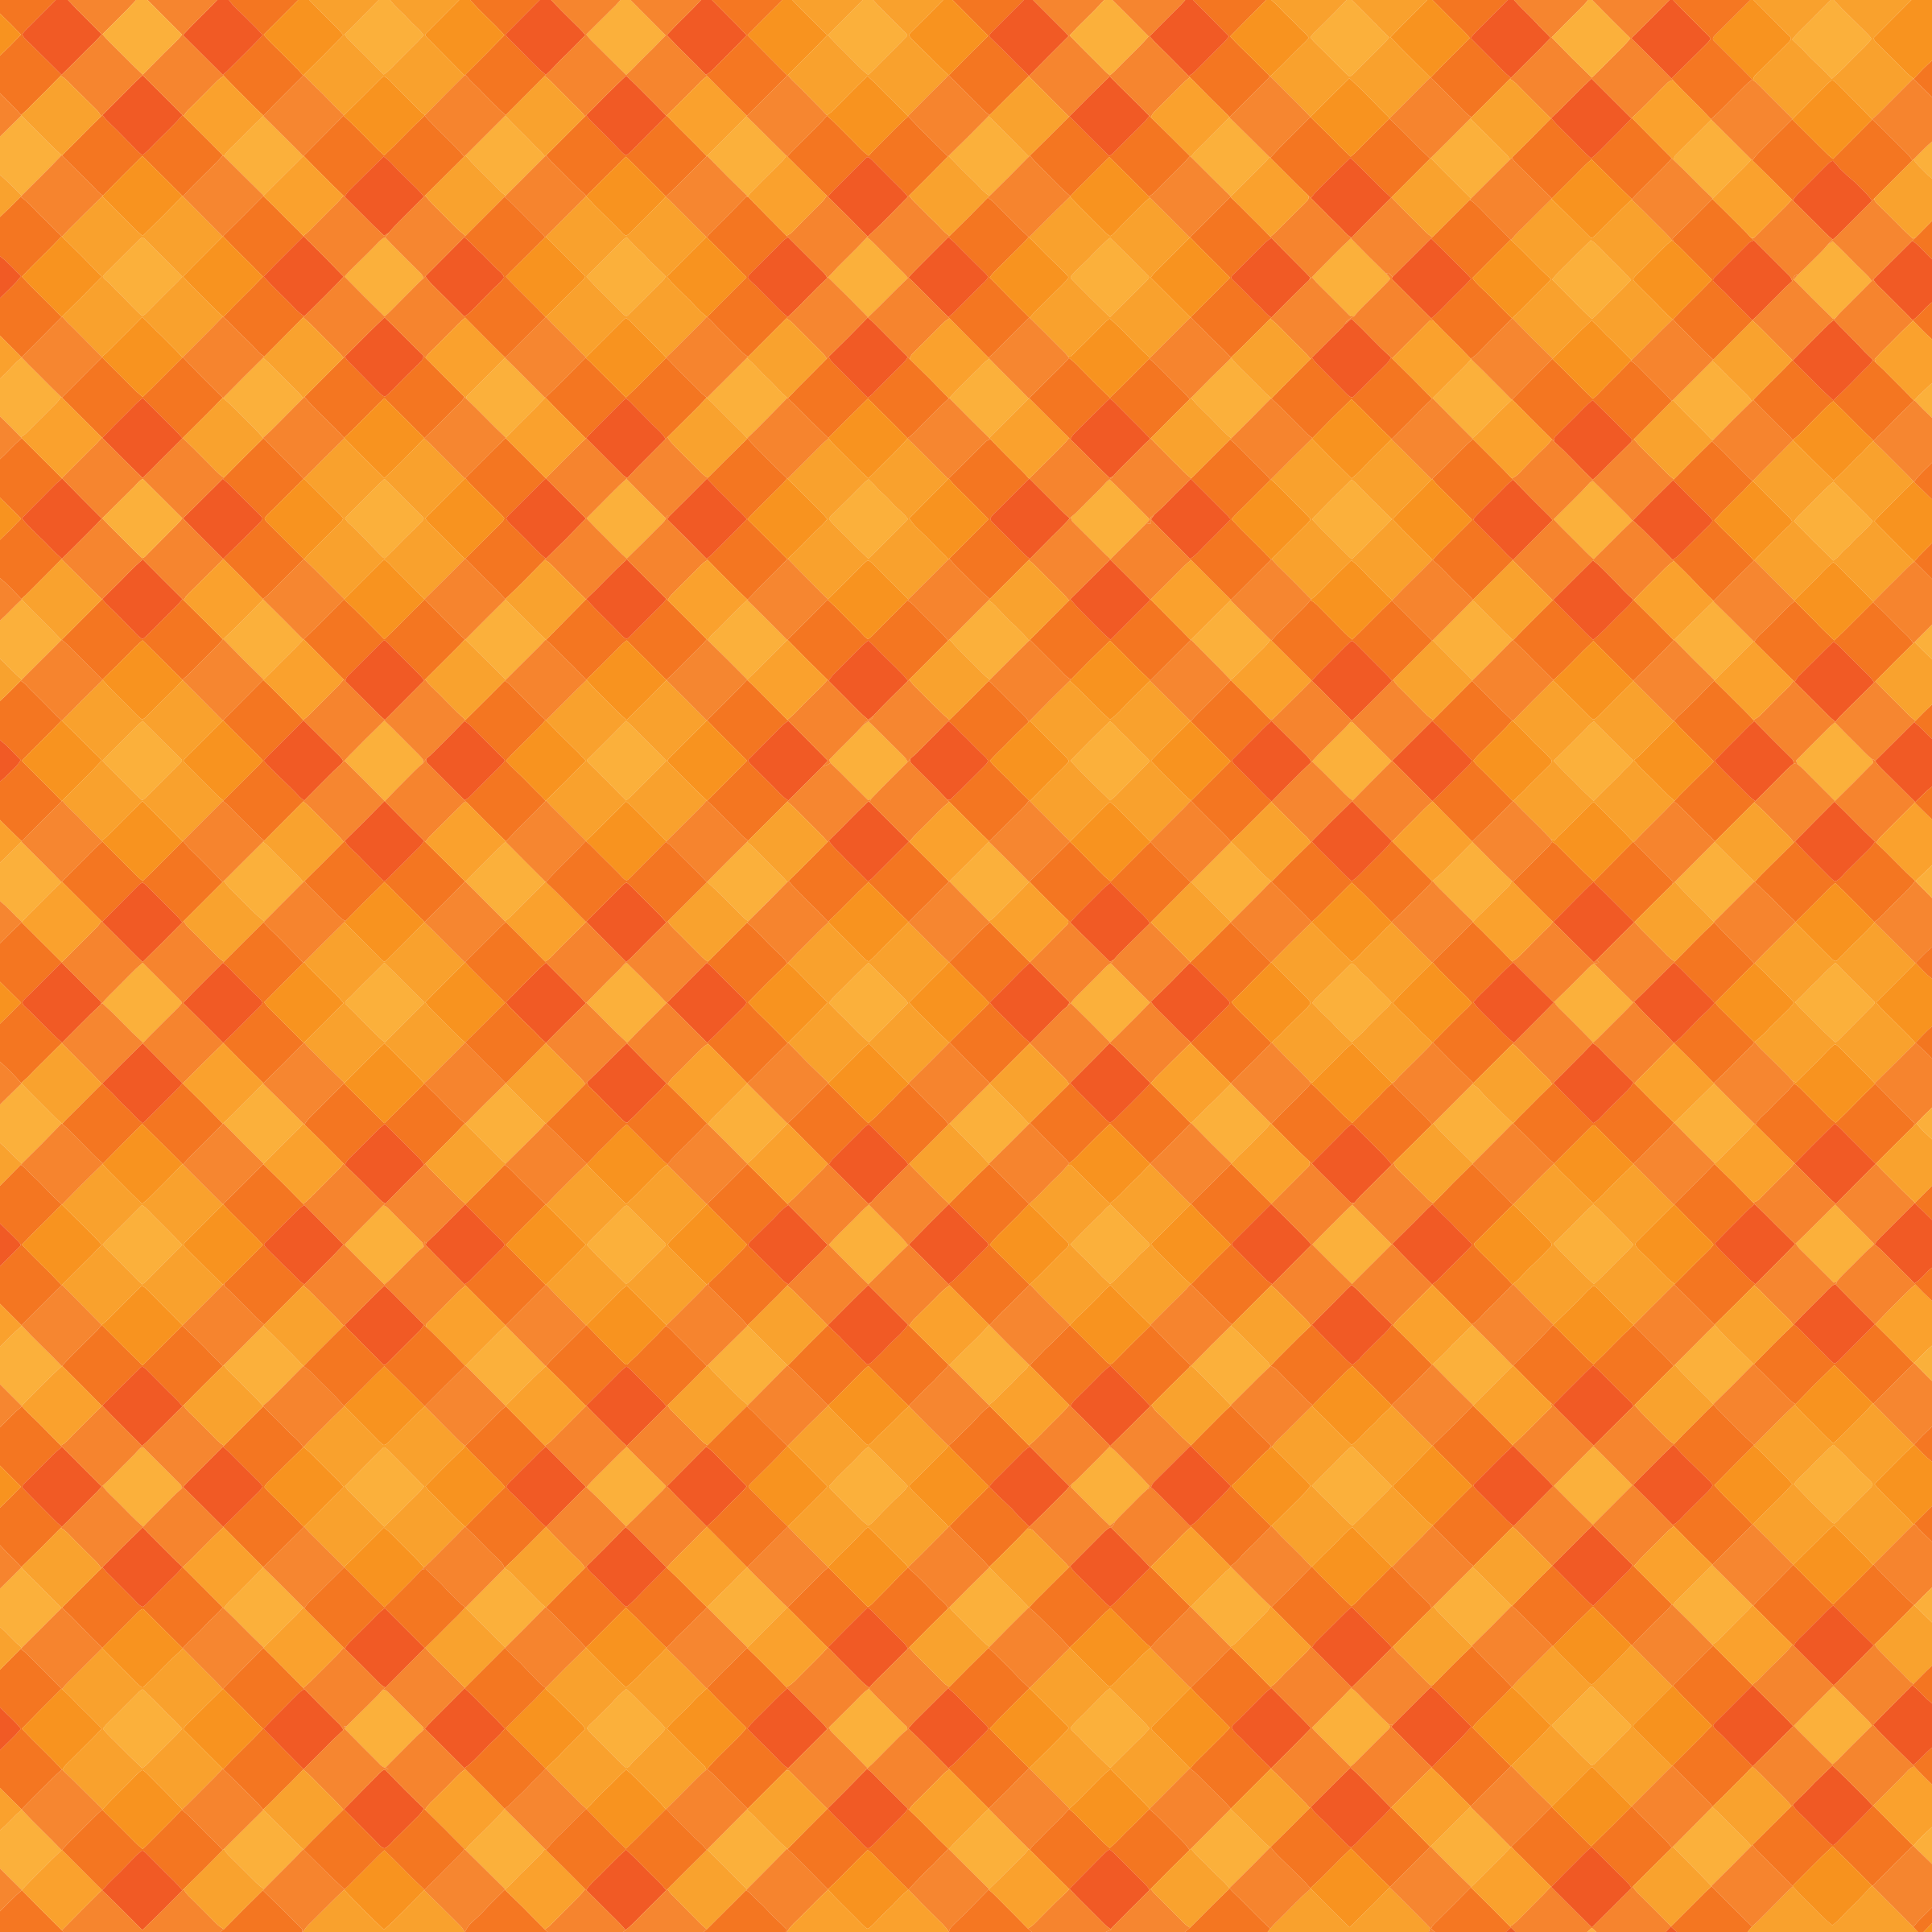 picture free Checkered clipart clip art. Orange gingham background icons.